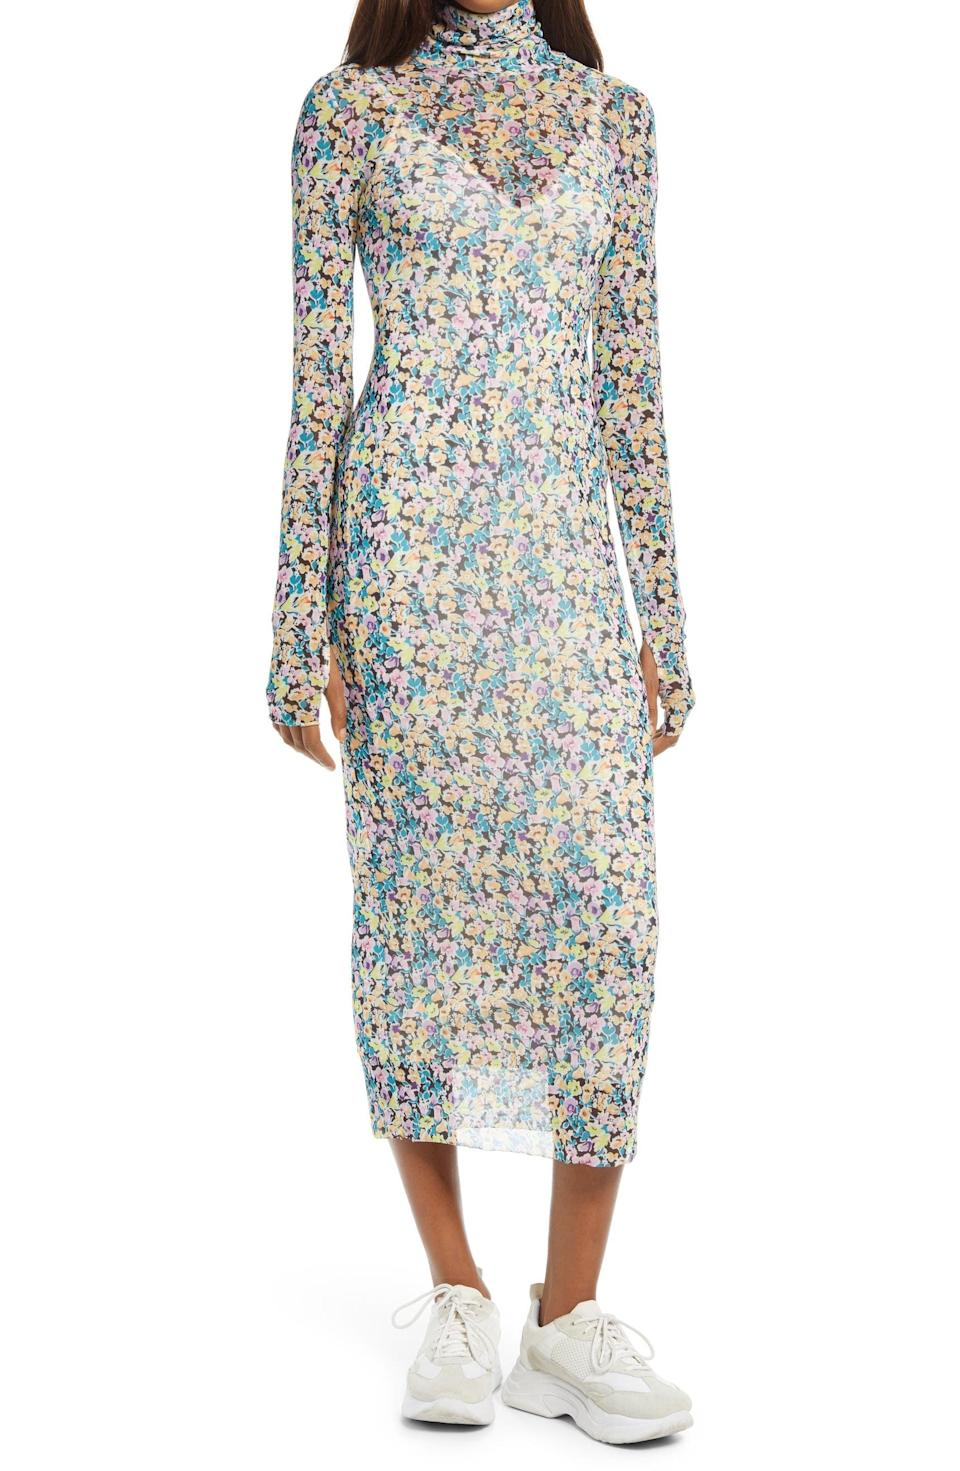 <p>This <span>AFRM Shailene Sheer Long Sleeve Dress</span> ($37, originally $88) is a great transitional layer, thanks to the turtleneck and the long sleeves. Finish off the look with sneakers or boots, and you'll be ringing in the new season.</p>